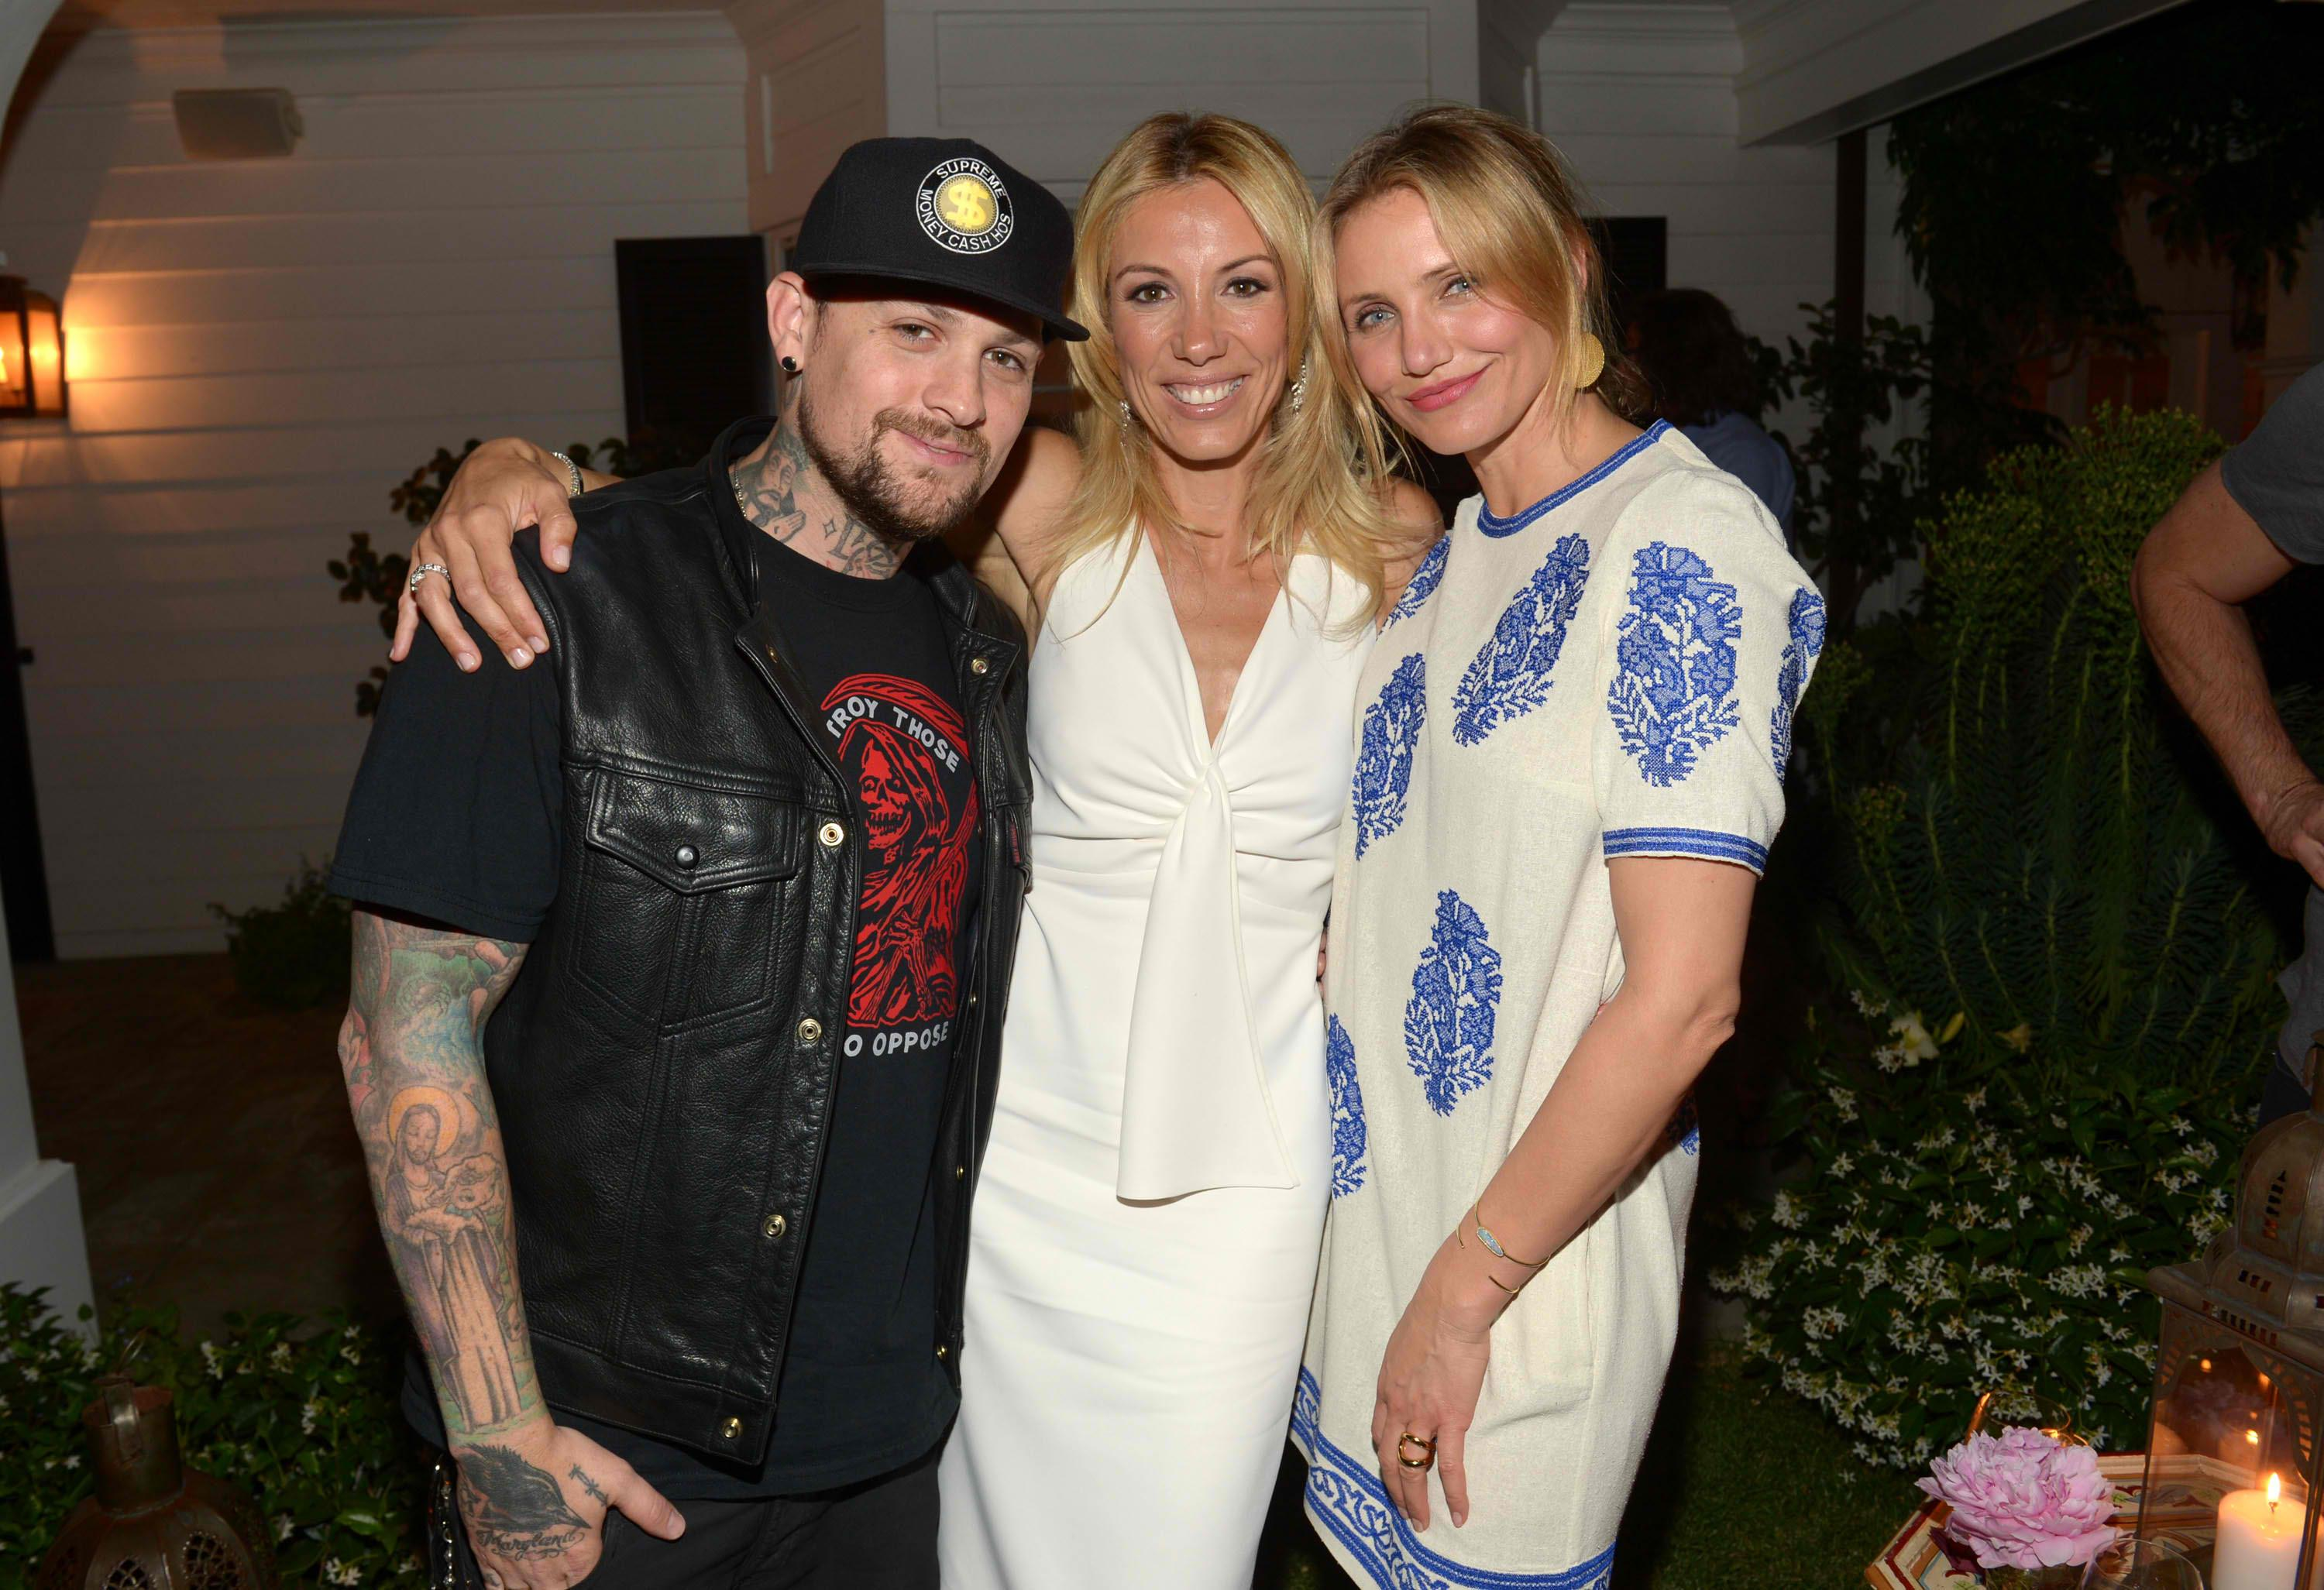 Benji Madden Makes Public Vow Never to Leave Cameron Diaz